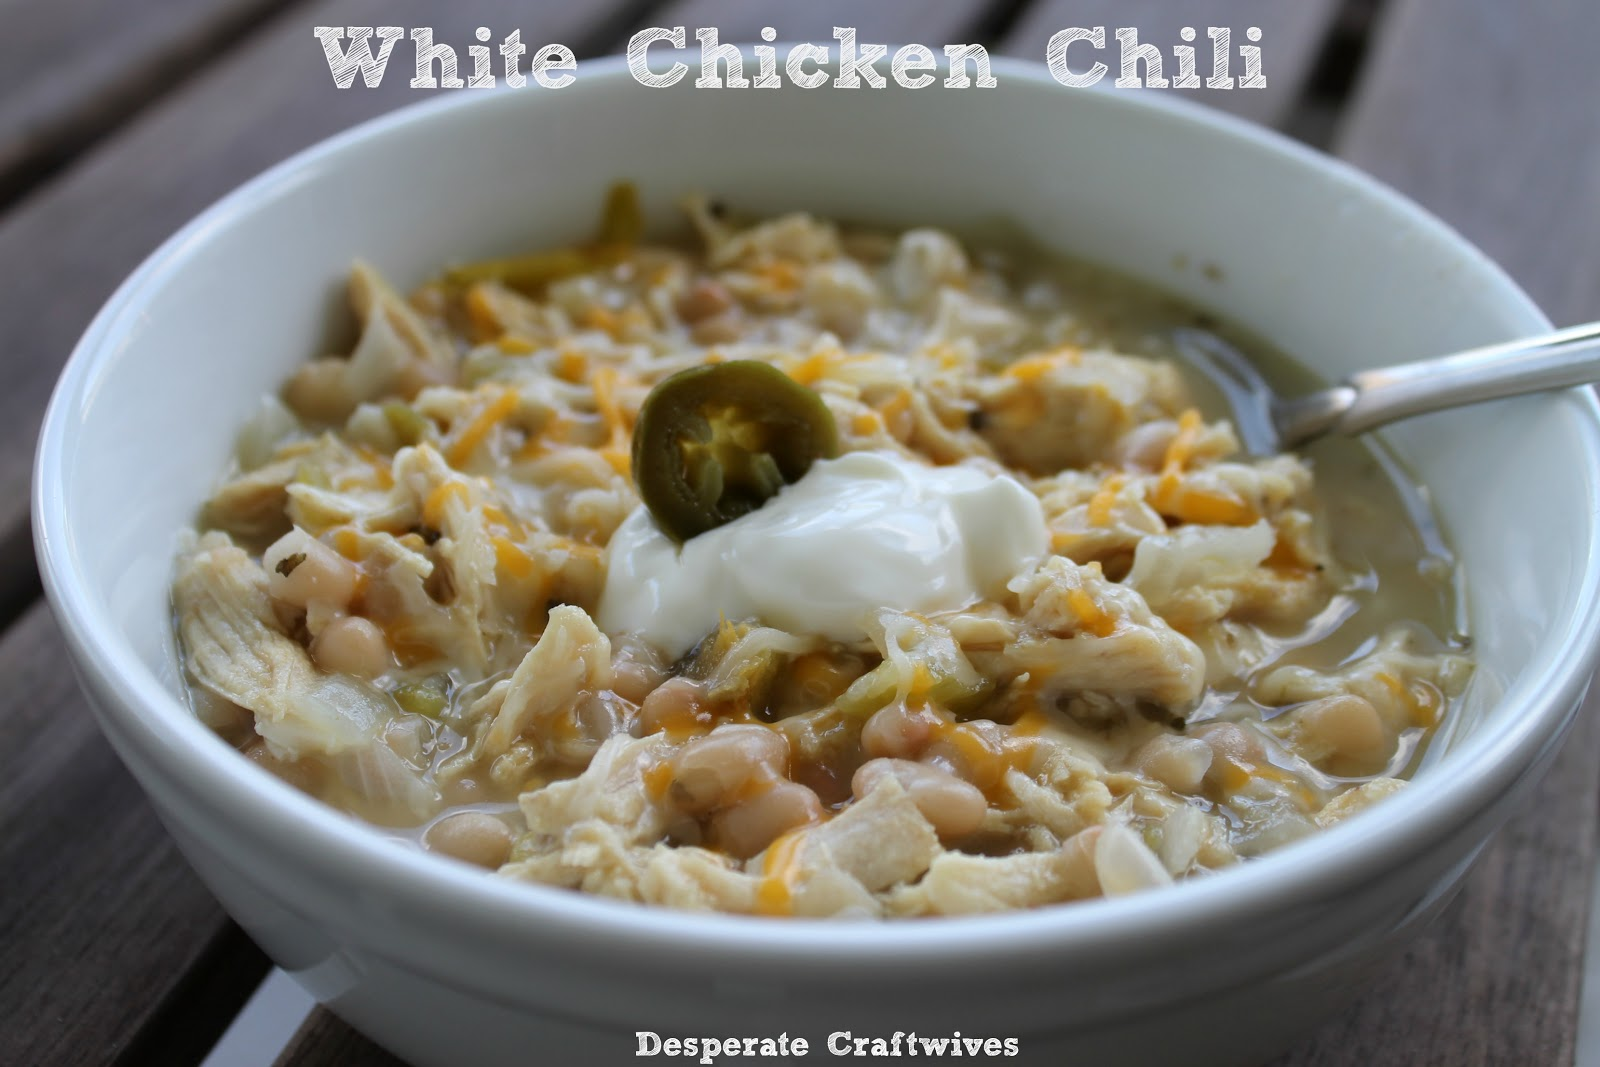 Desperate Craftwives: The Best White Chicken Chili